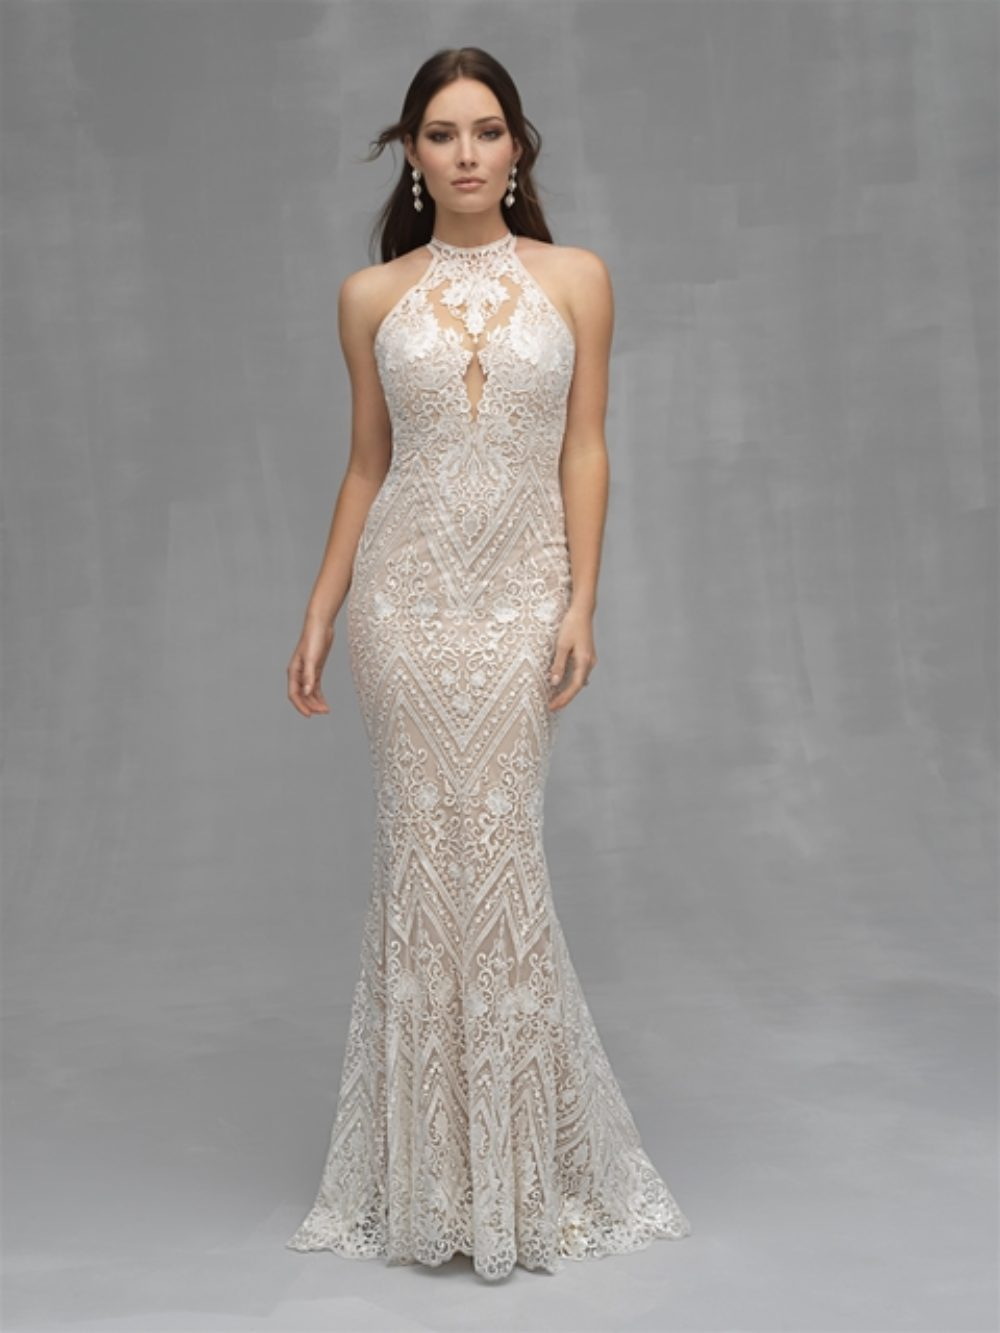 68ef4d9eac2 Wedding Dresses By Allure Couture